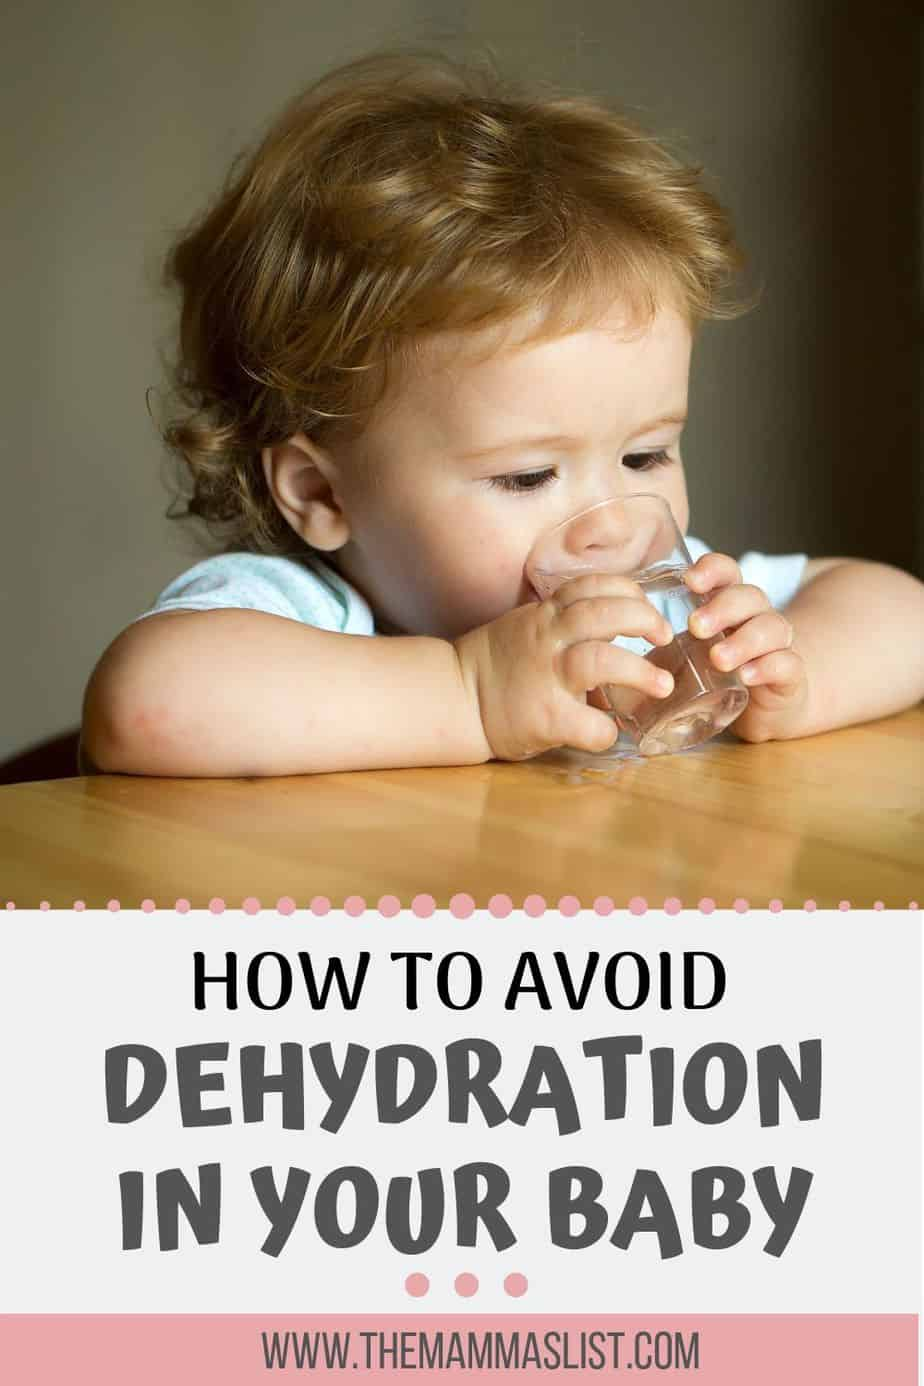 Top tips to avoid dehydration in your baby or toddler during the hot summer months. Keep your baby safe from the harsh sun and hydrated while still enjoying the weather and outdoors.